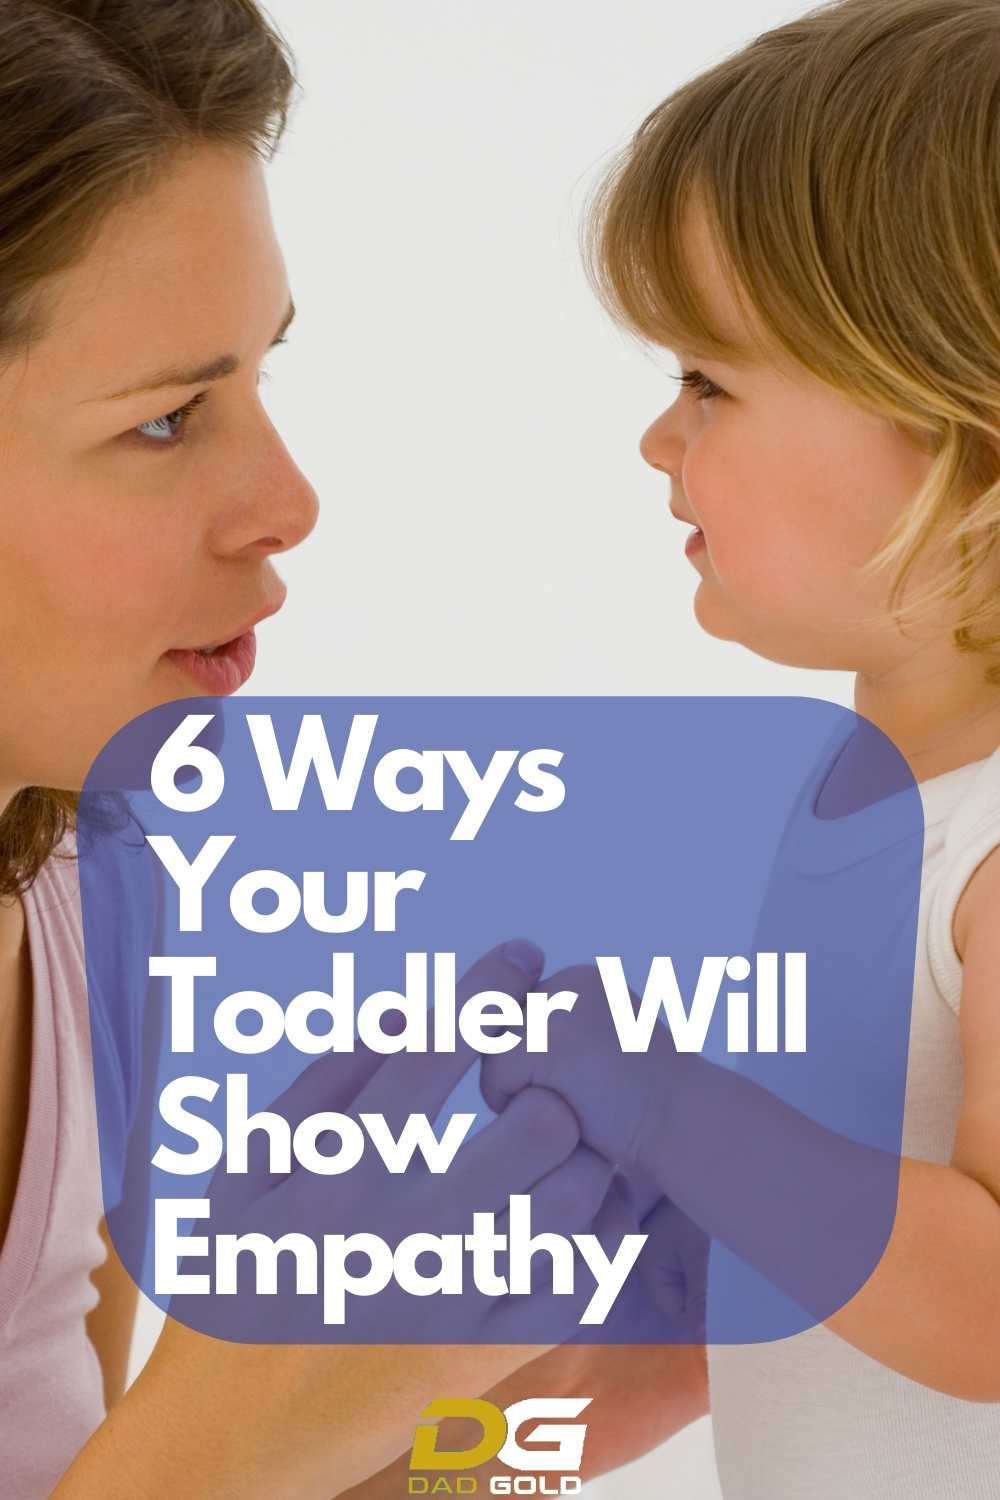 6 Ways Your Toddler Will Show Empathy